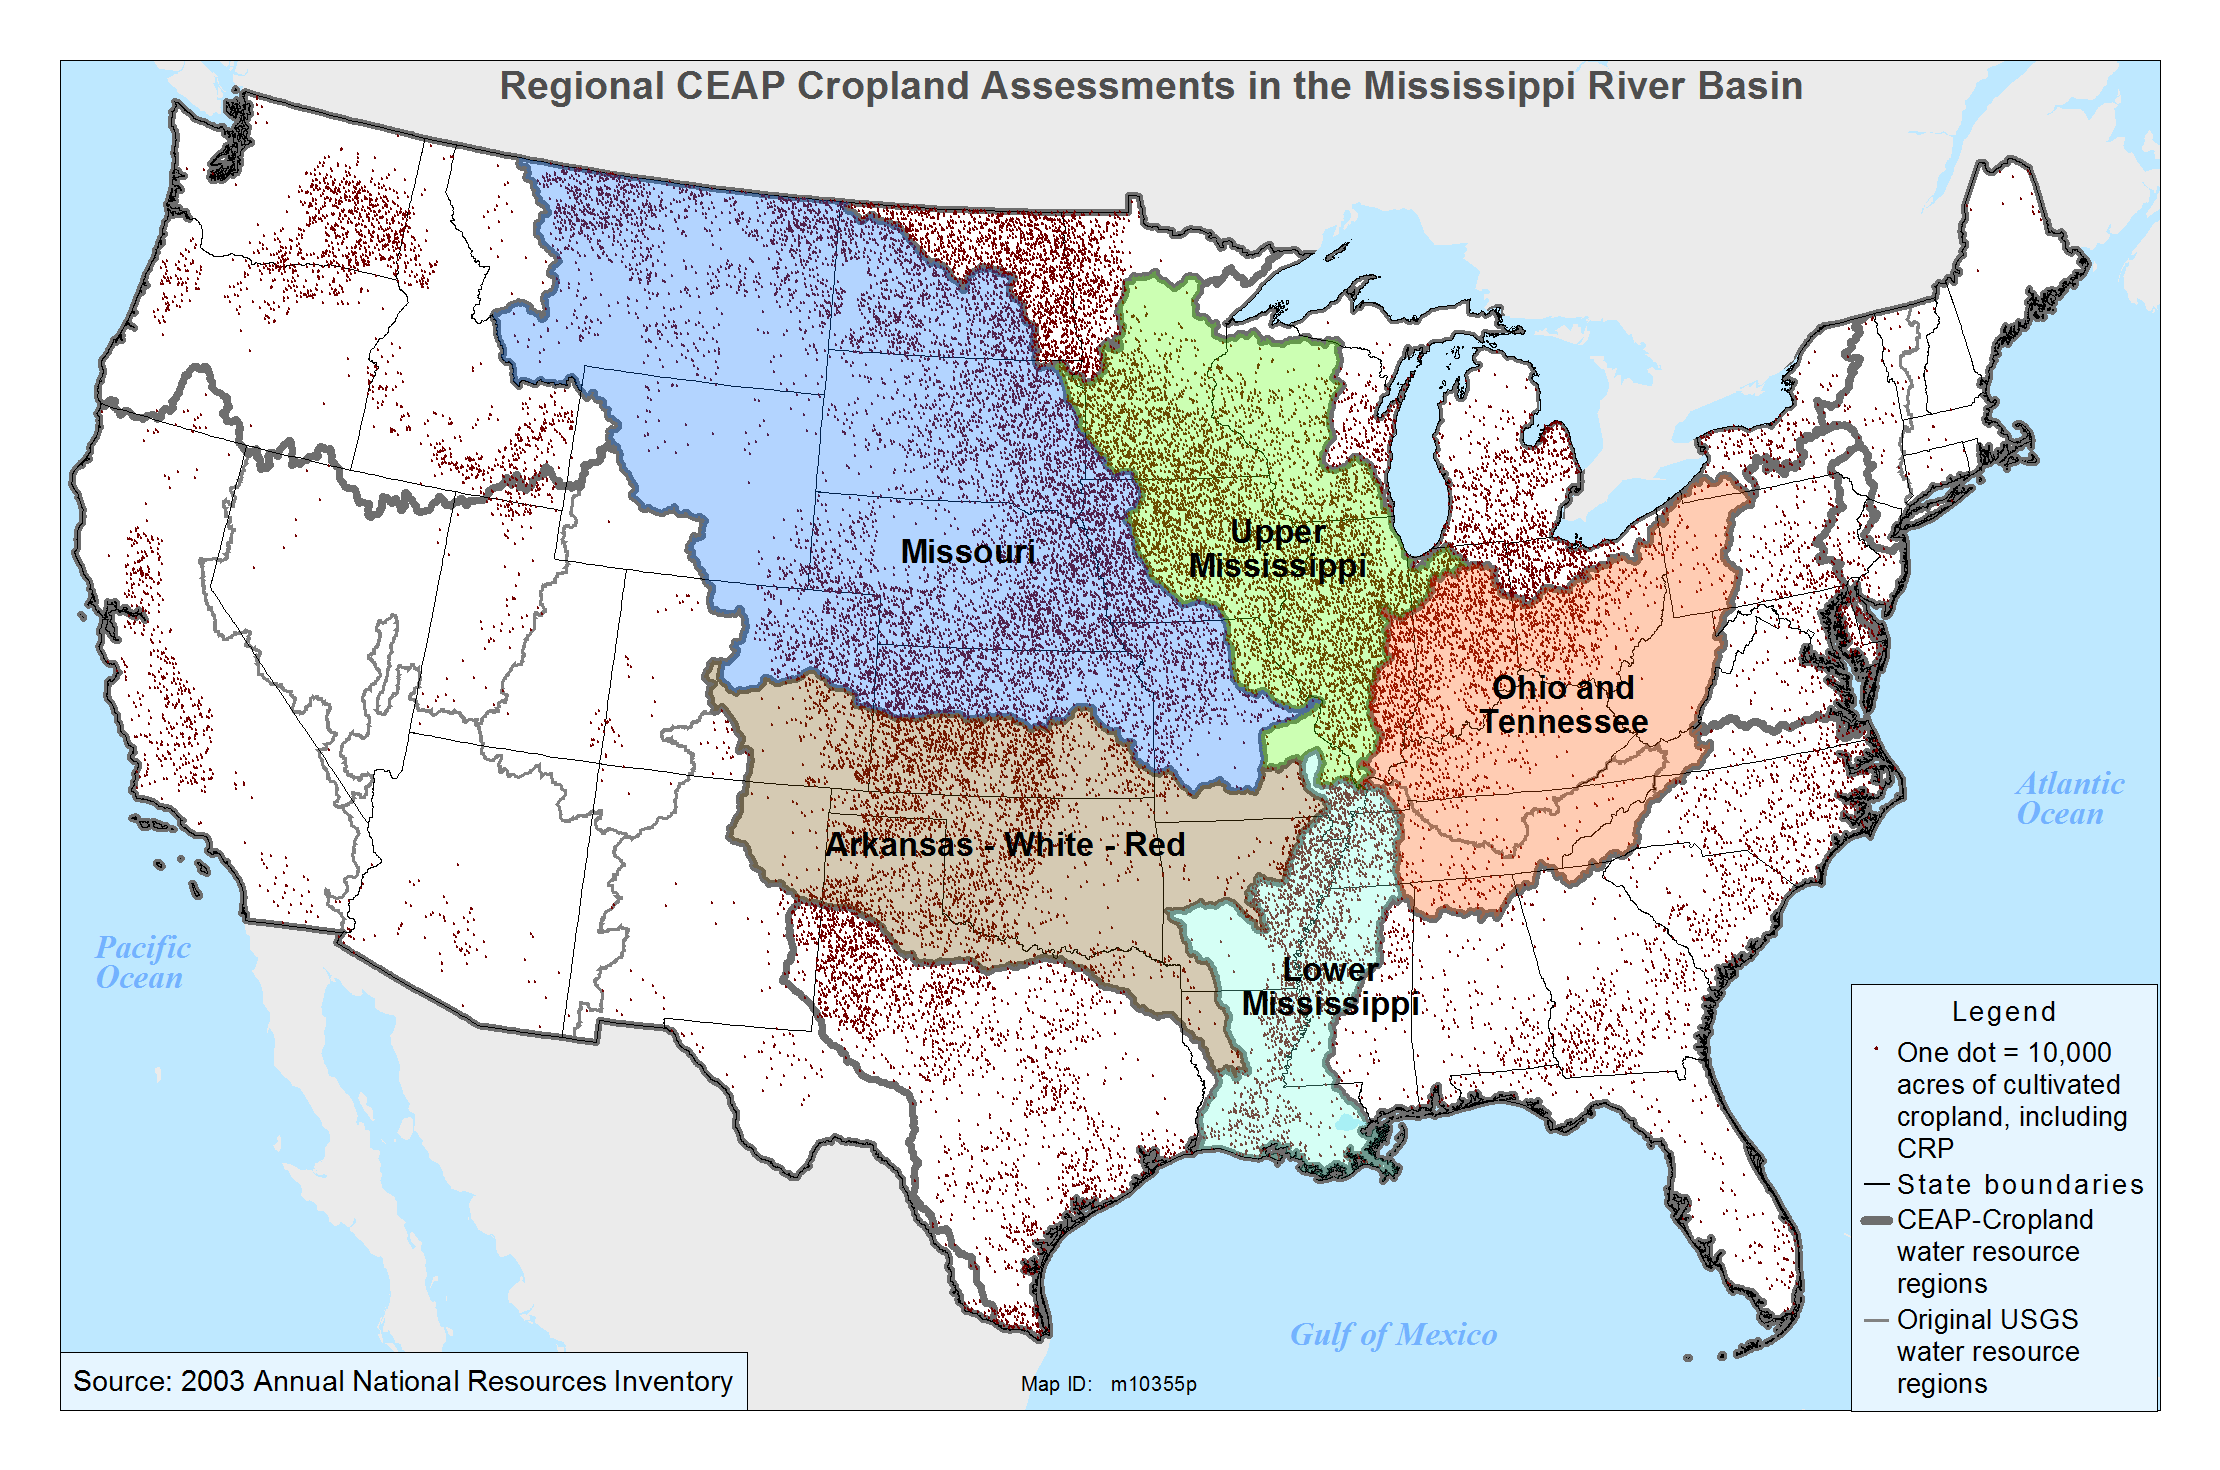 NRCS released a new report that shows farmers have significantly reduced the loss of sediment and nutrients from farm fields through voluntary conservation work in the lower Mississippi River basin. Read more.